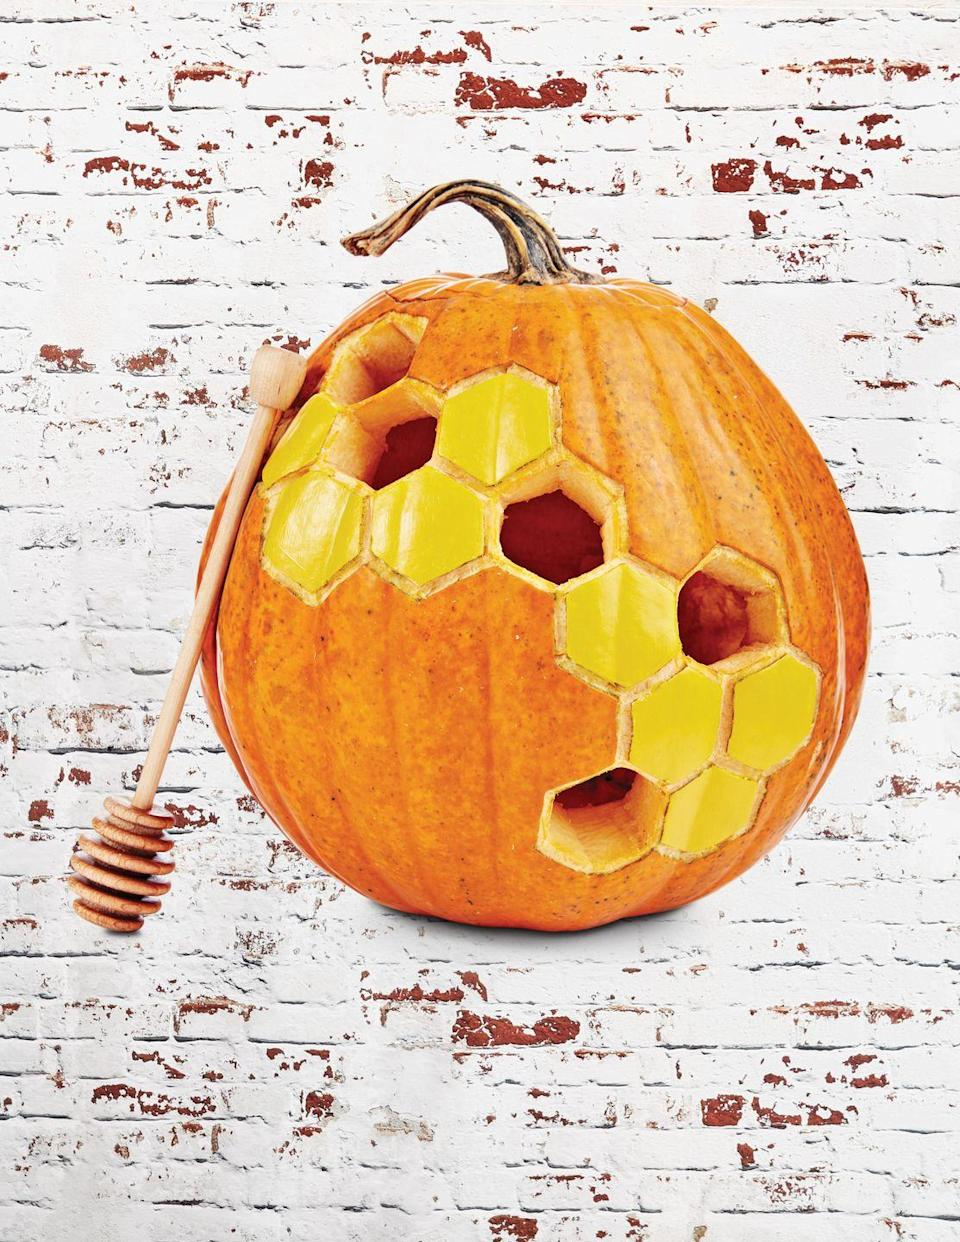 "<p>Think completely outside the box with this honeycomb design. We guarantee the unique look will impress your guests!</p><p><strong>Make the Honeycomb Pumpkin:</strong> Cut a hole in the bottom of a medium orange pumpkin; scoop out pulp and seeds. Draw a honeycomb pattern on the front; etch out. Cut out a few of the combs and paint the remaining combs with yellow craft paint. Lean a honey dipper against its side.</p><p><a class=""link rapid-noclick-resp"" href=""https://www.amazon.com/Naturally-Med-Olive-Dipper-Drizzlier/dp/B001APDFGU/?tag=syn-yahoo-20&ascsubtag=%5Bartid%7C10050.g.279%5Bsrc%7Cyahoo-us"" rel=""nofollow noopener"" target=""_blank"" data-ylk=""slk:SHOP HONEY DIPPERS"">SHOP HONEY DIPPERS</a></p>"